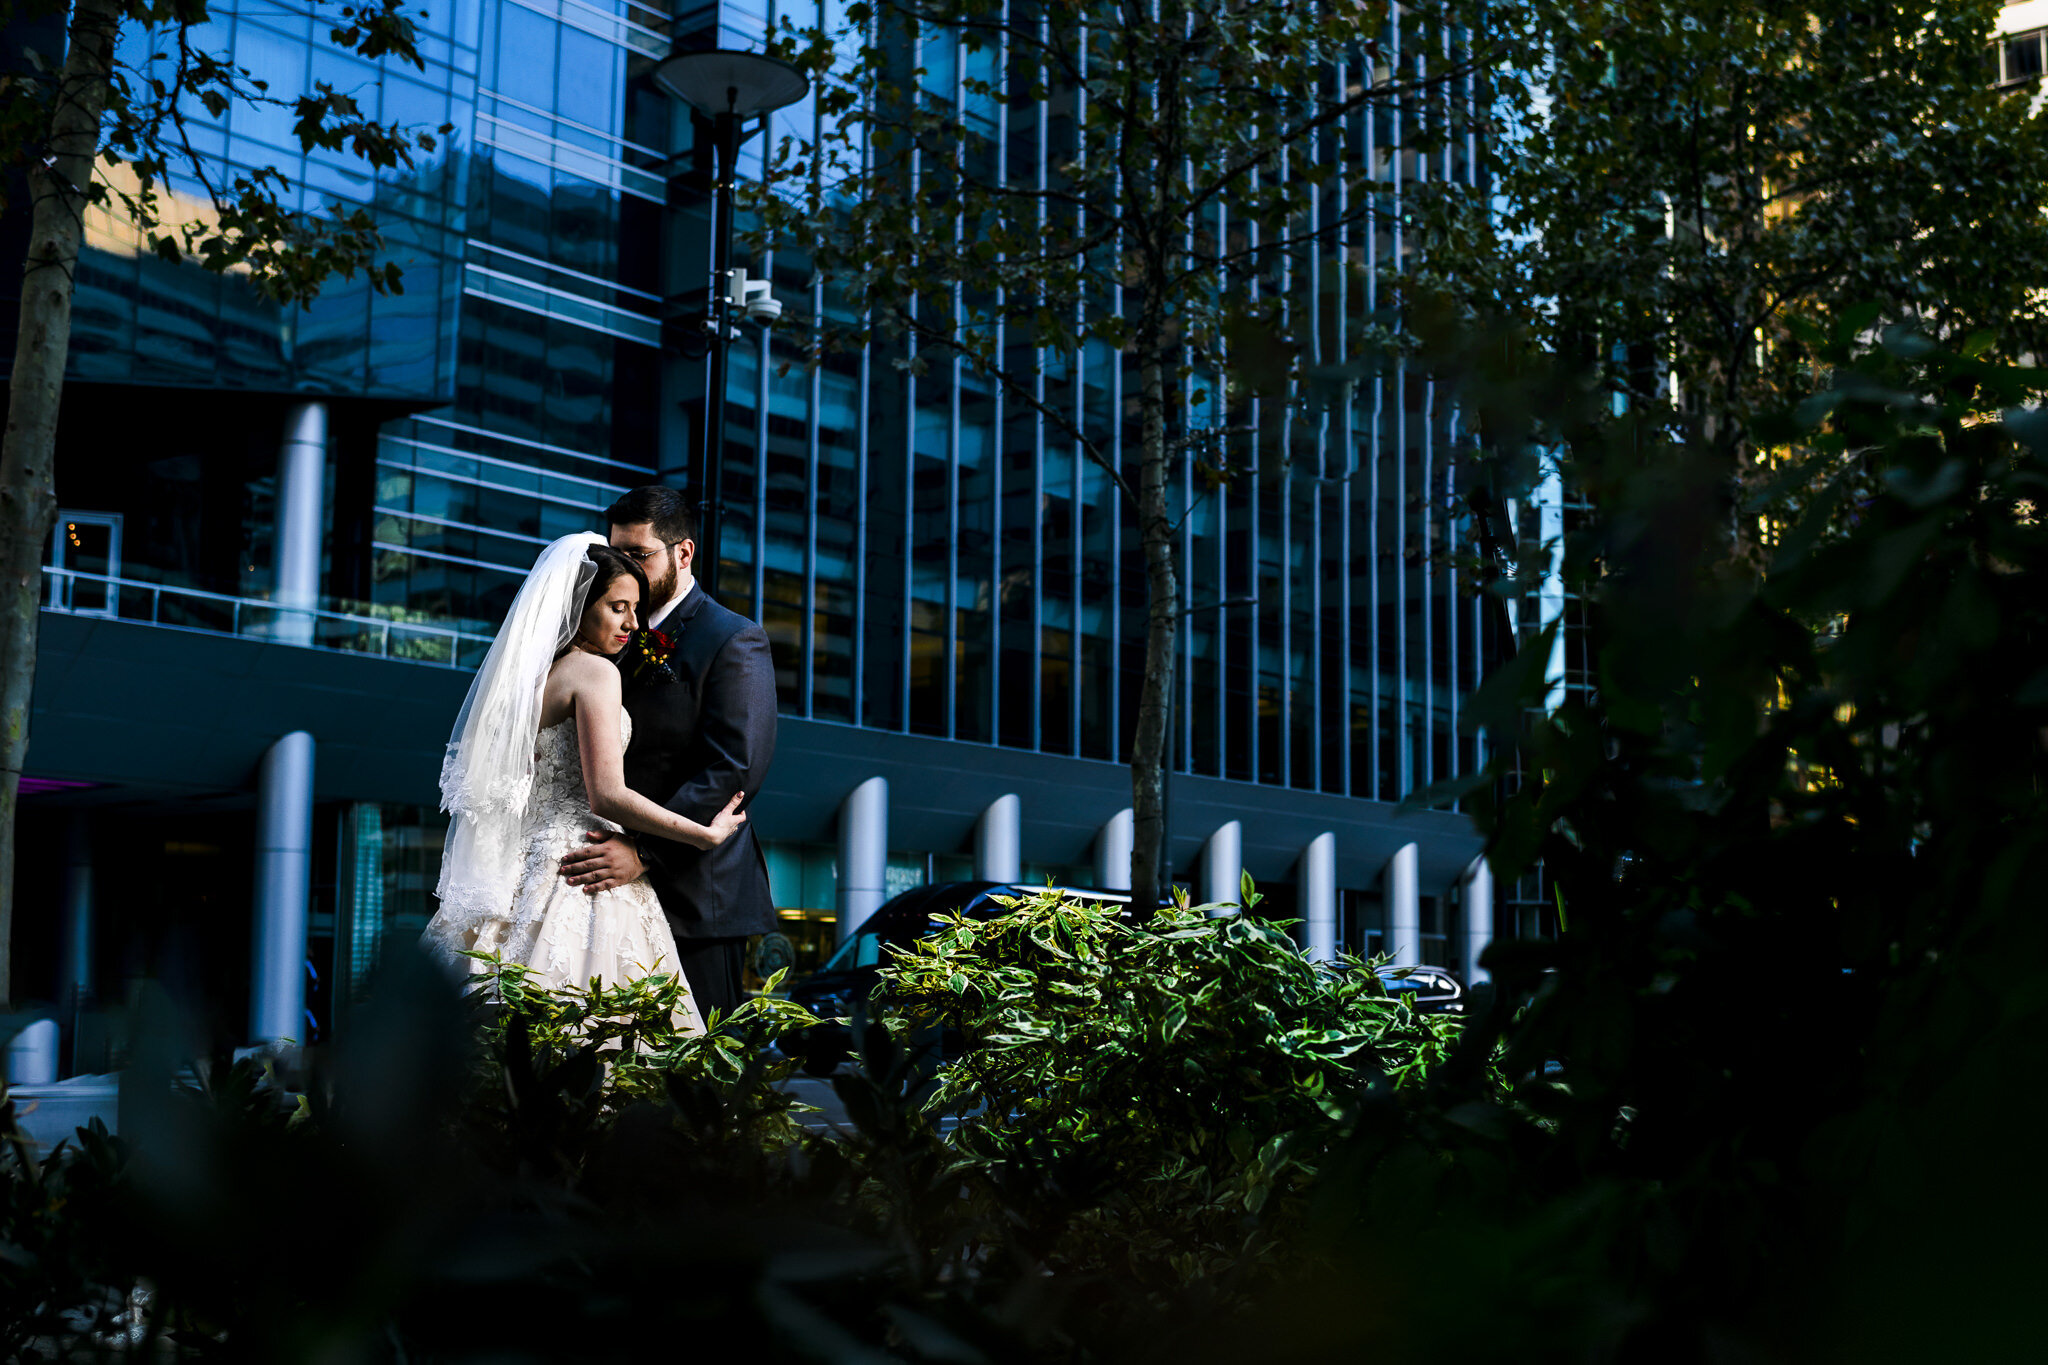 Brozenia-Ritz-Carlton-Philadelphia-Wedding-Photographer-27.JPG